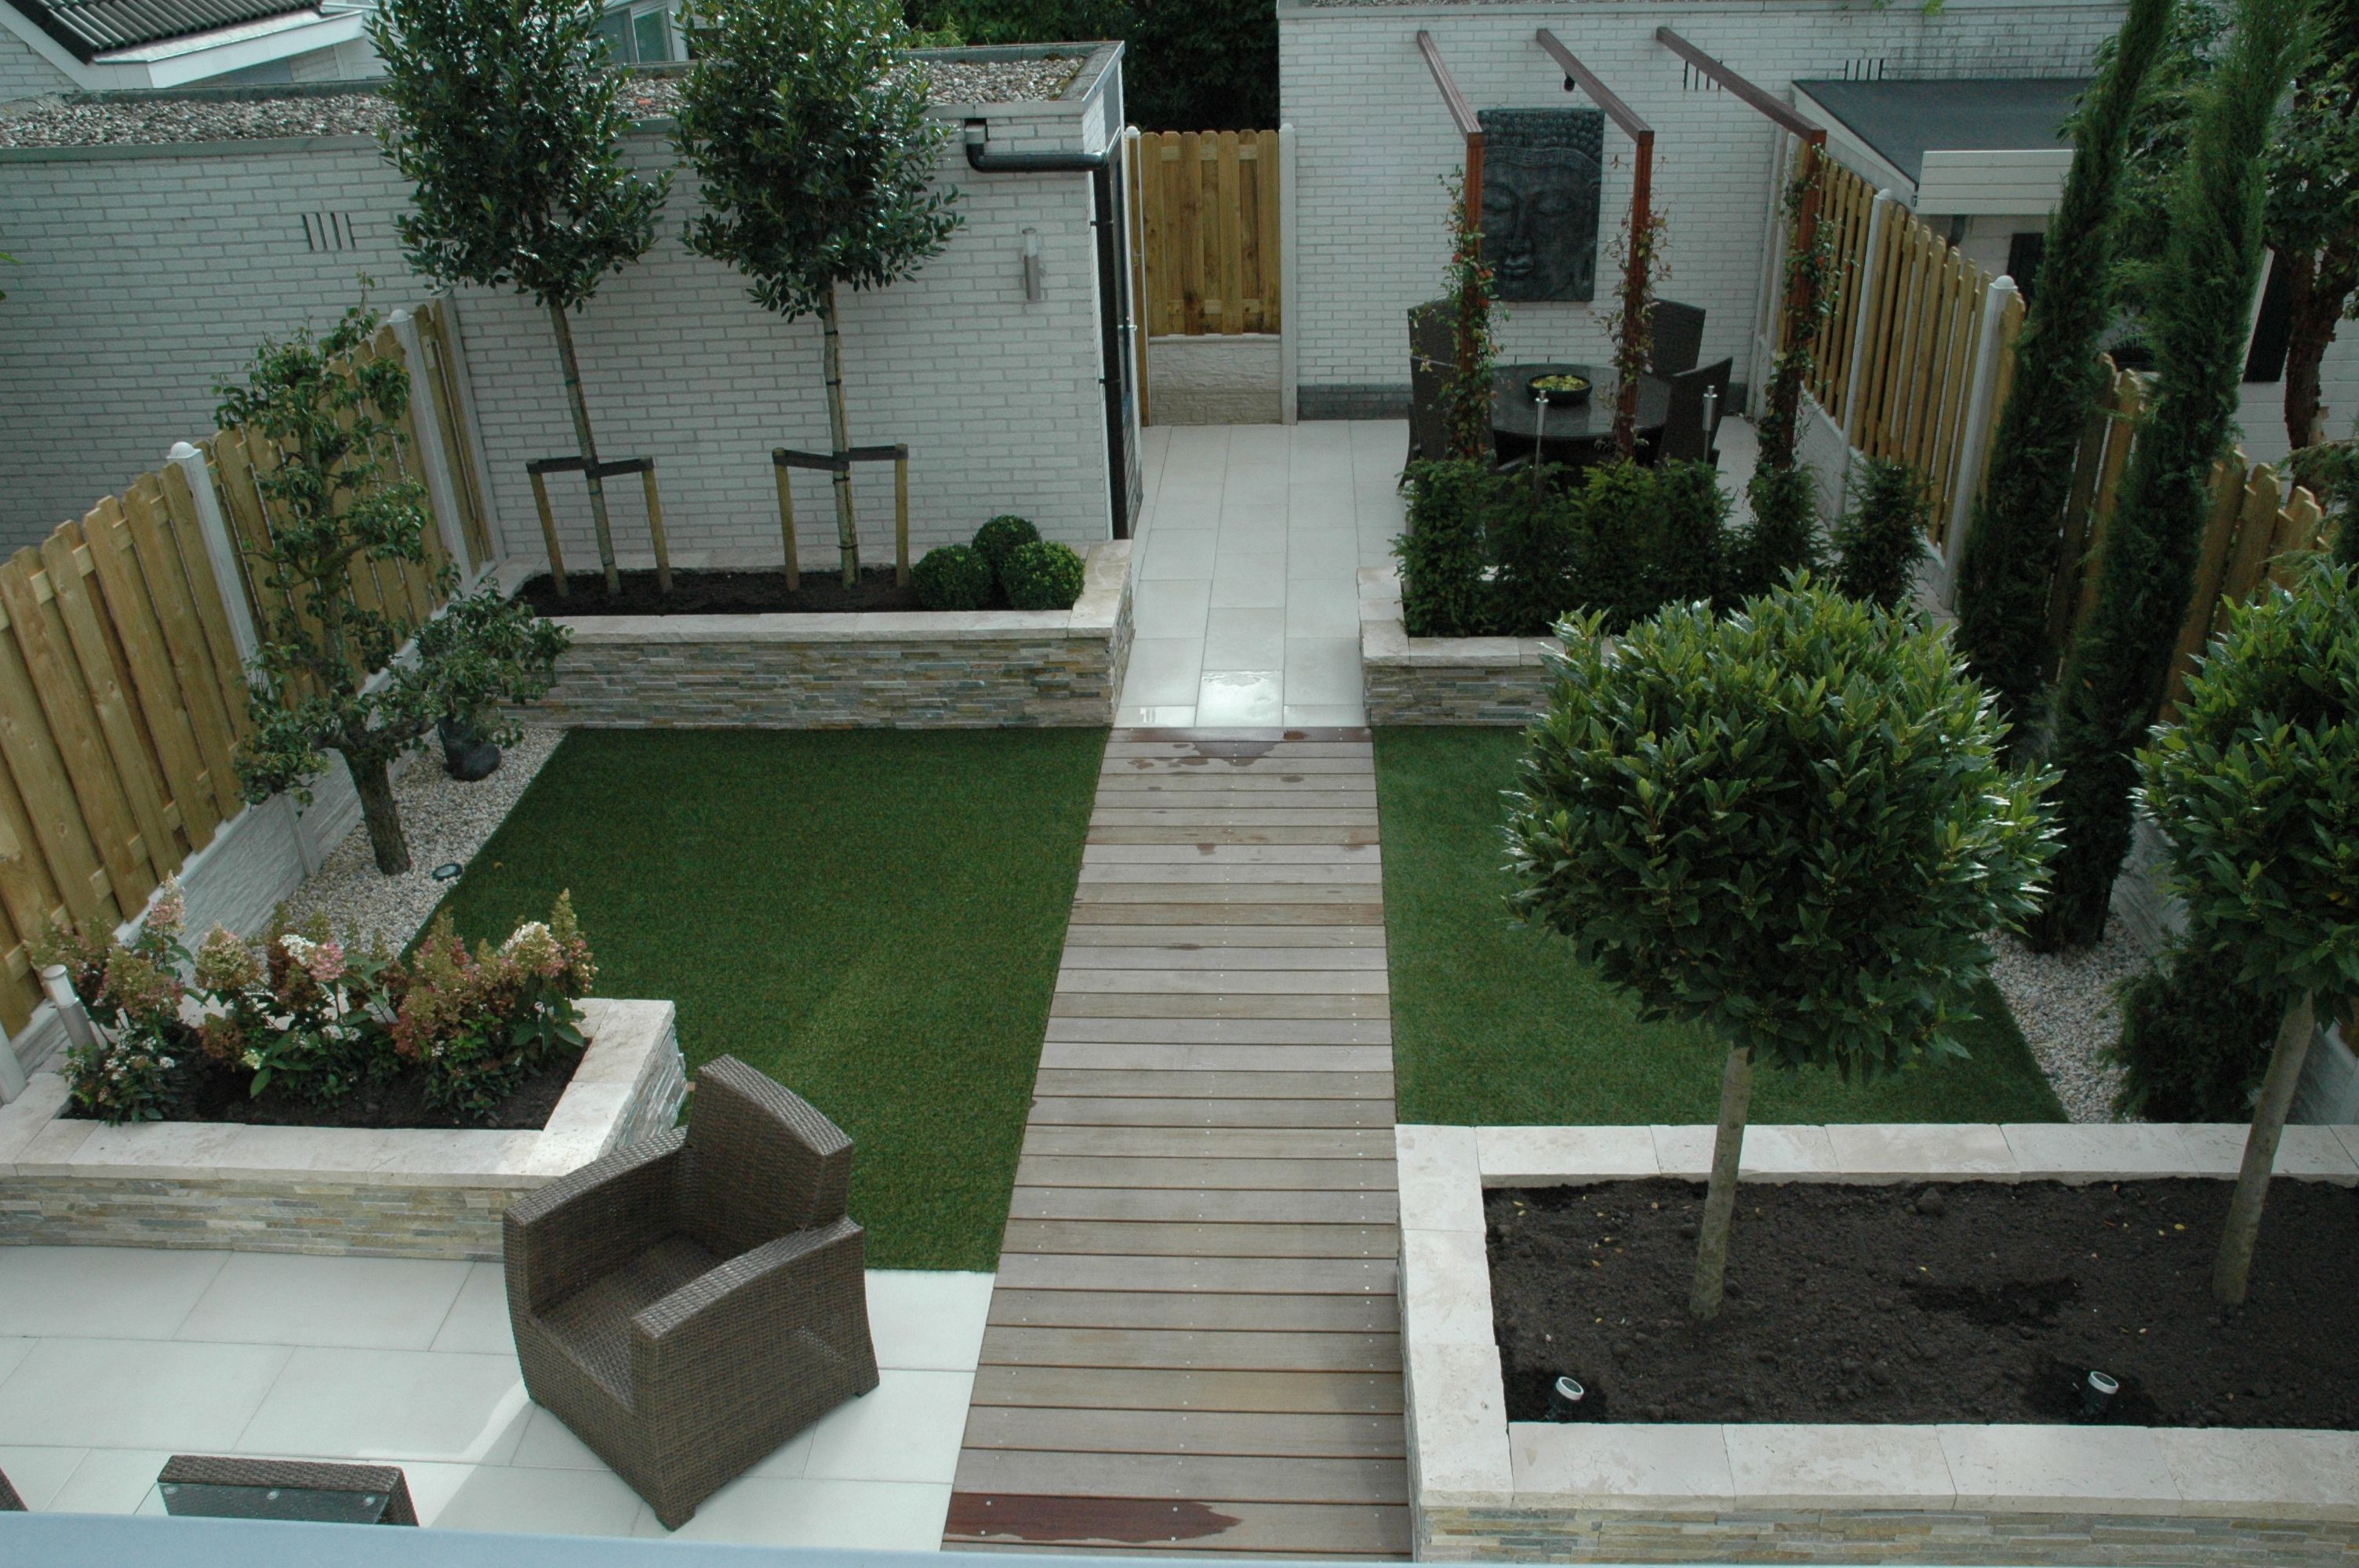 Modern Garden Ideas Uk get effortless lush, neatly cropped grass all year round with